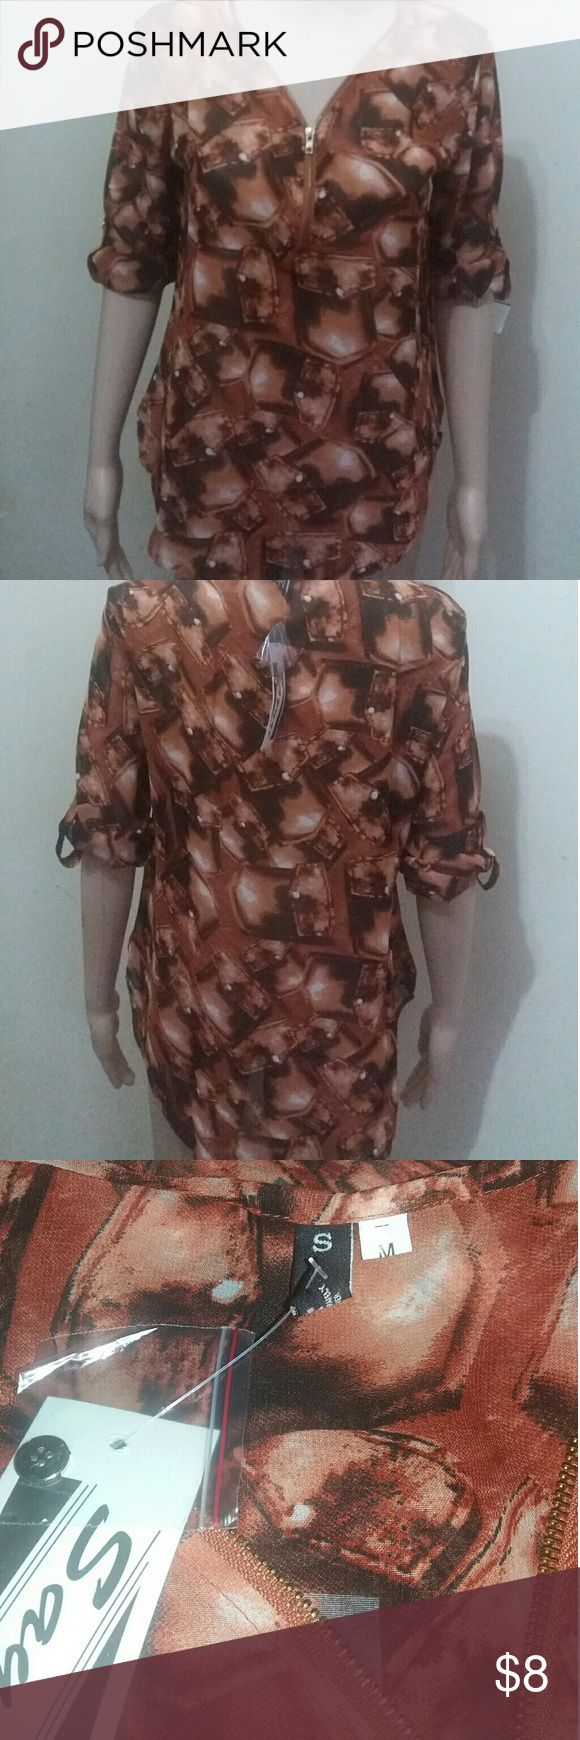 Zip up blouse NWT Size medium brown zip up blouse.  New with tags. Tops Blouses